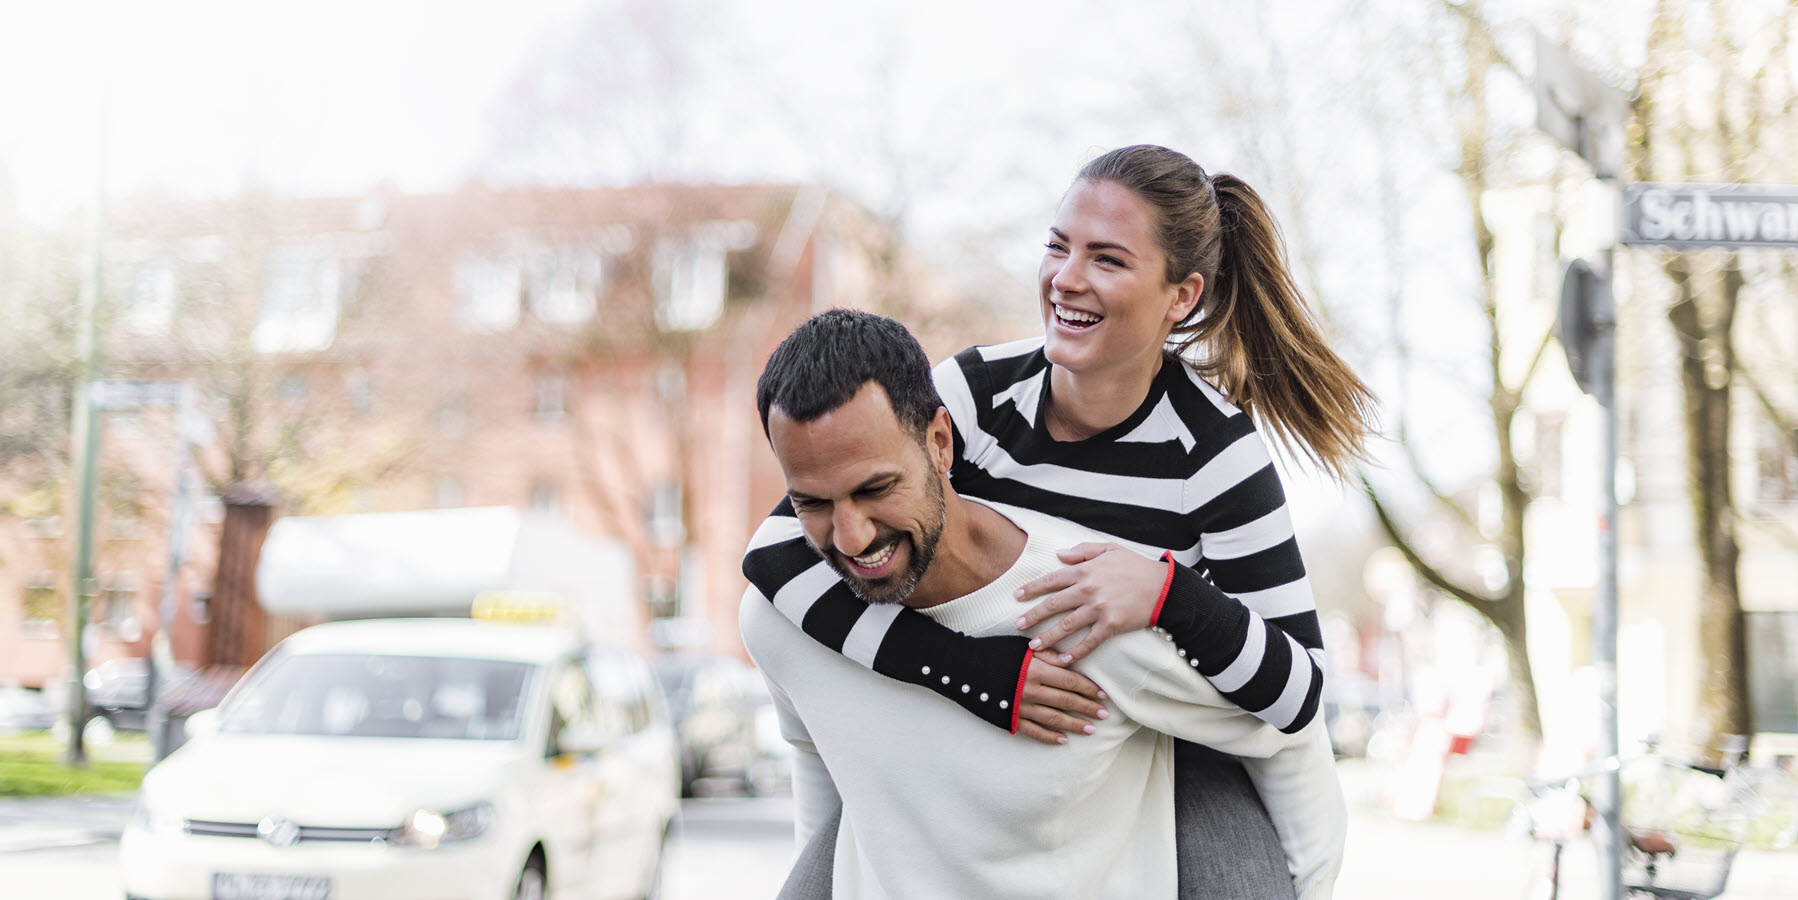 Young woman riding piggyback on man in urban setting